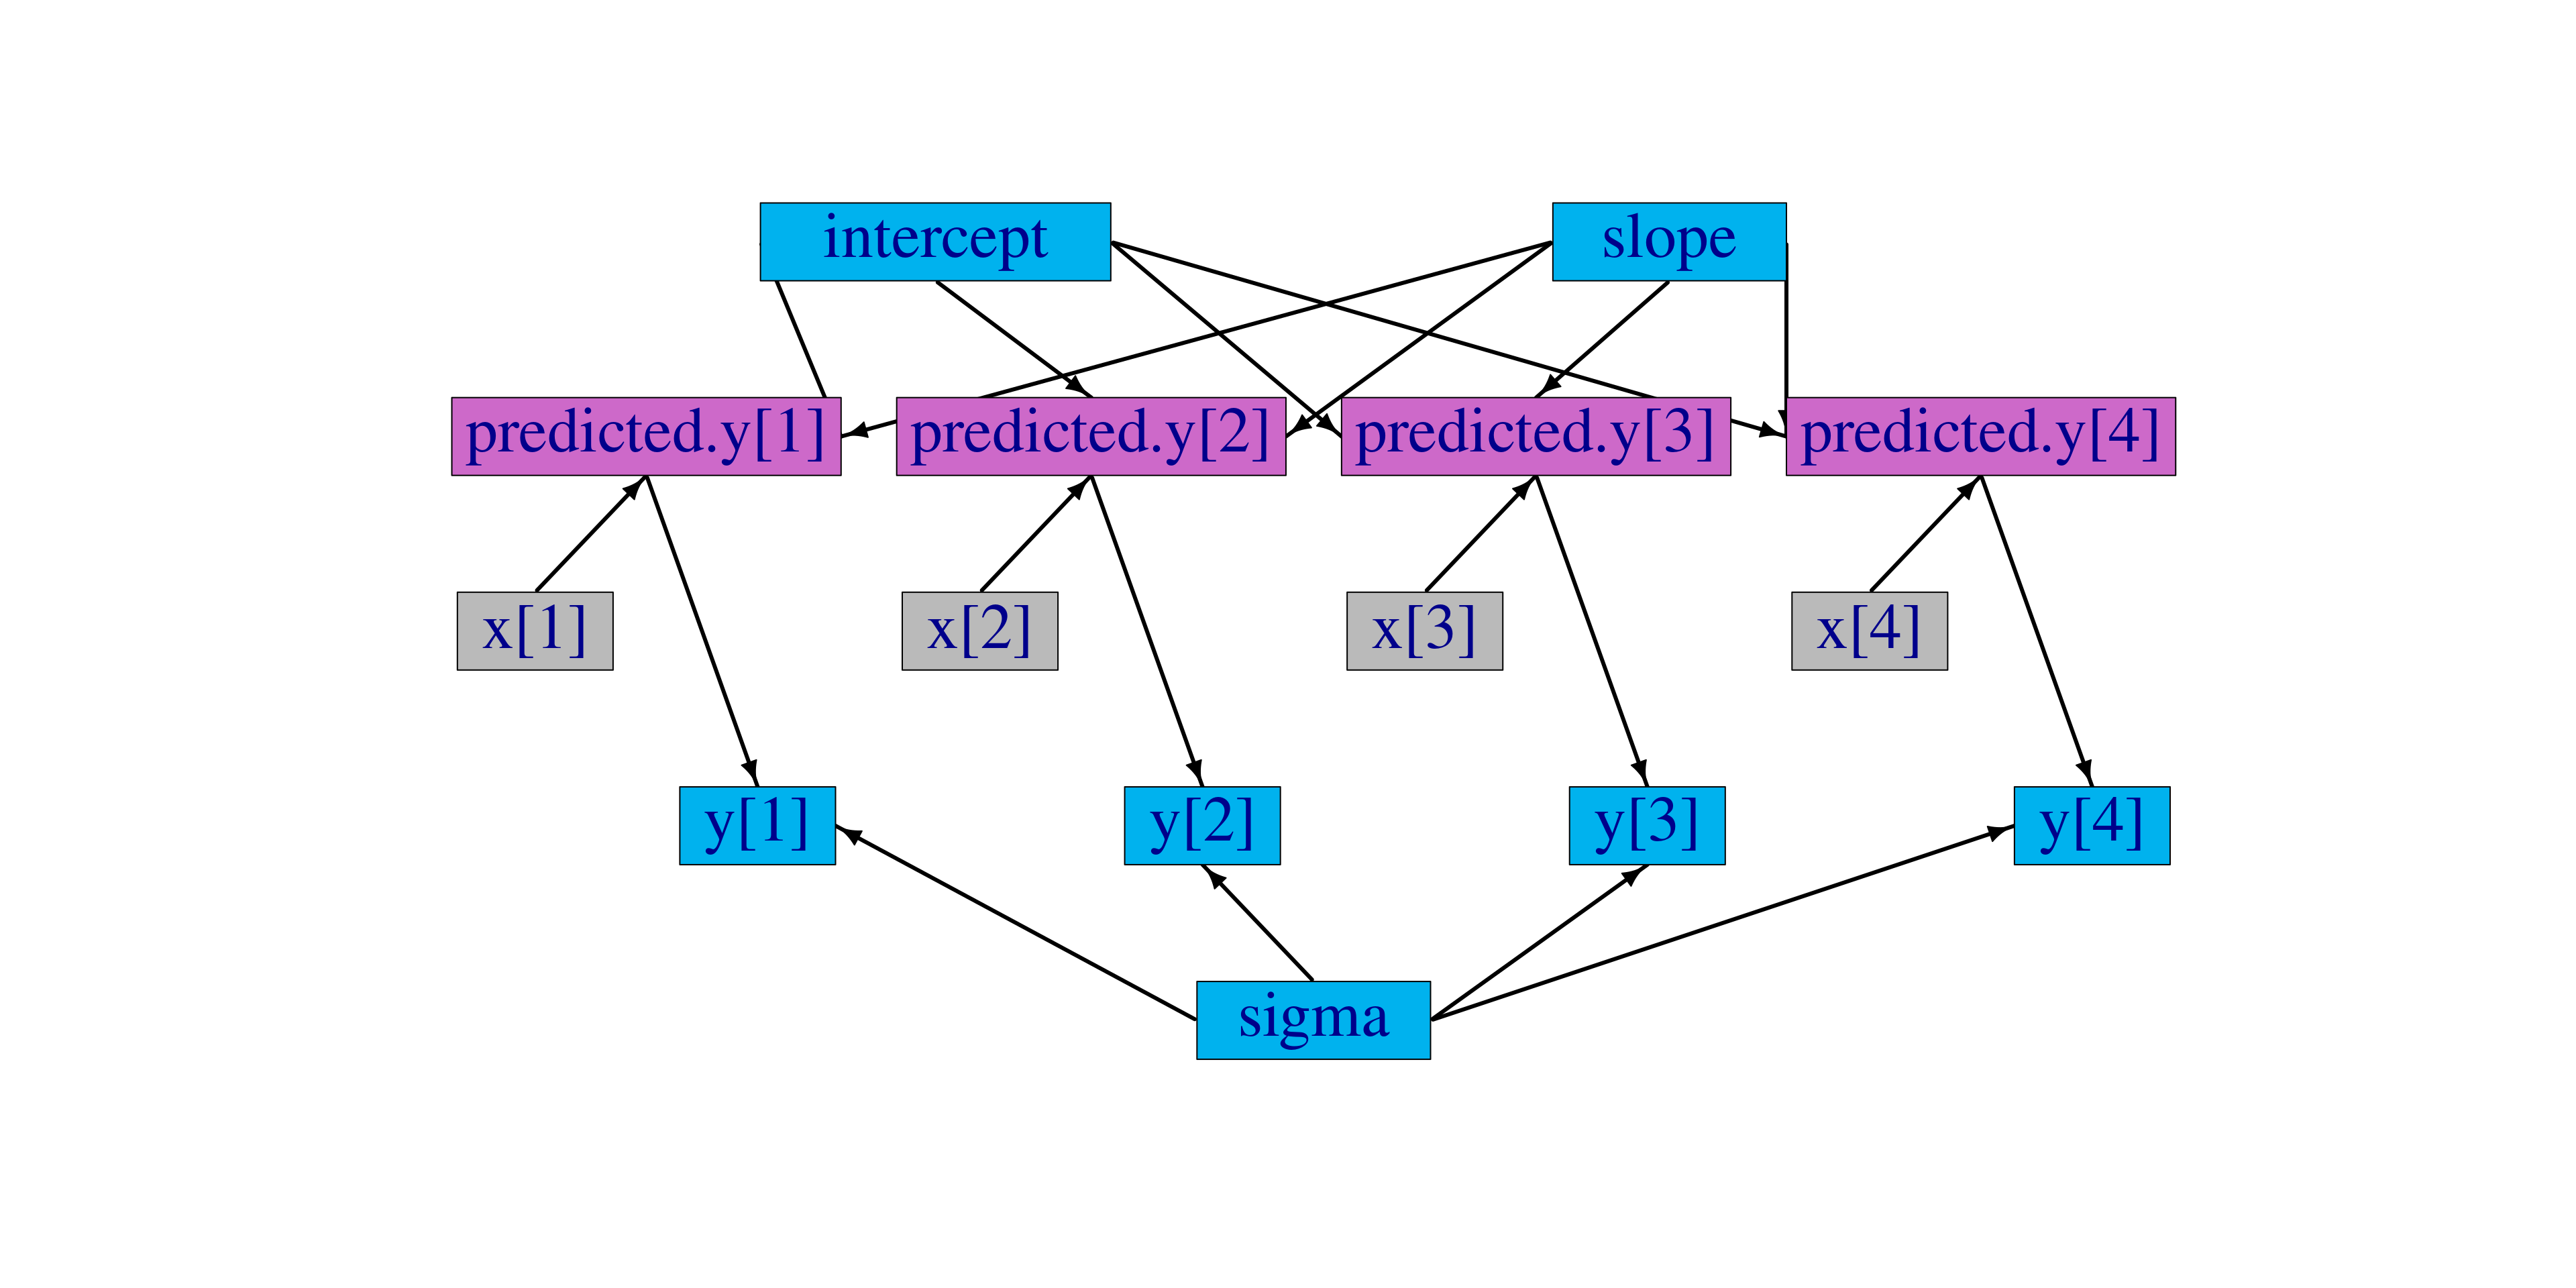 5 Writing models in NIMBLE's dialect of BUGS